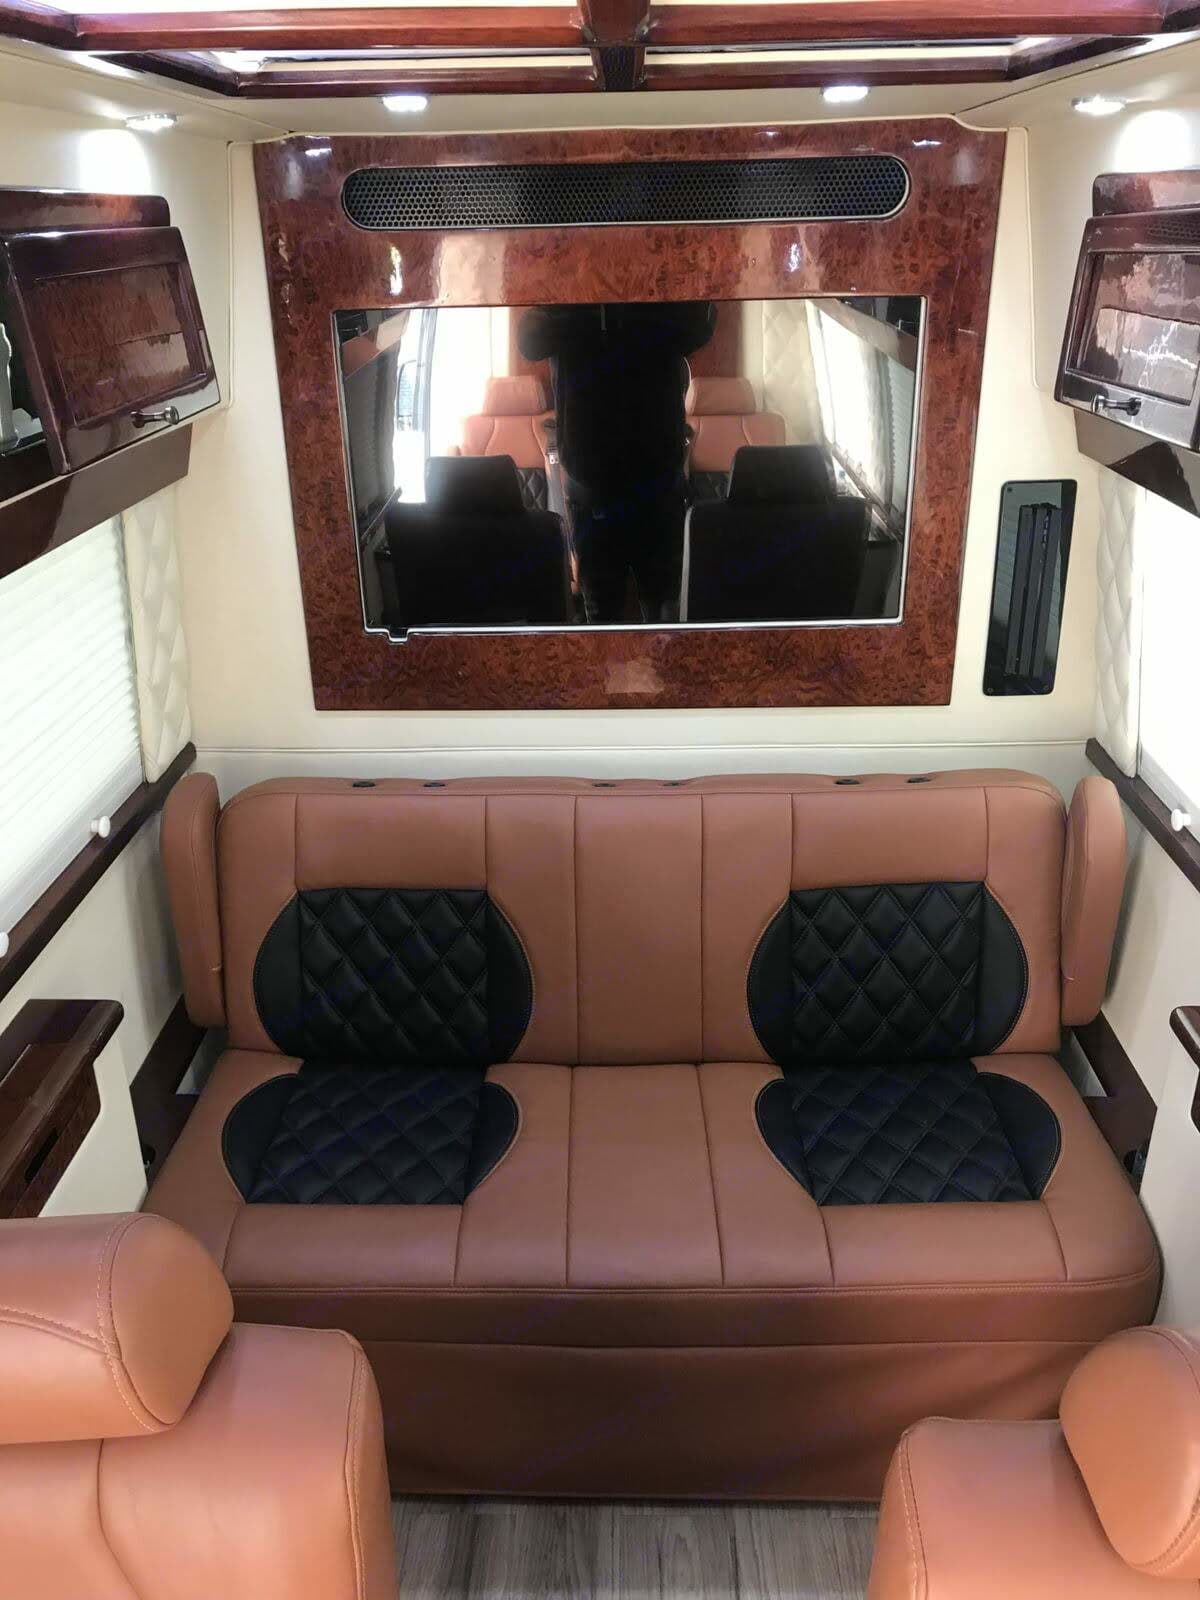 The bench at the end of the cabin is electric with a touch of a button the bench seating turns into a bed. Also has PlayStation 4 that you can see on the right side of the back wall. Mercedes-Benz Sprinter 2013